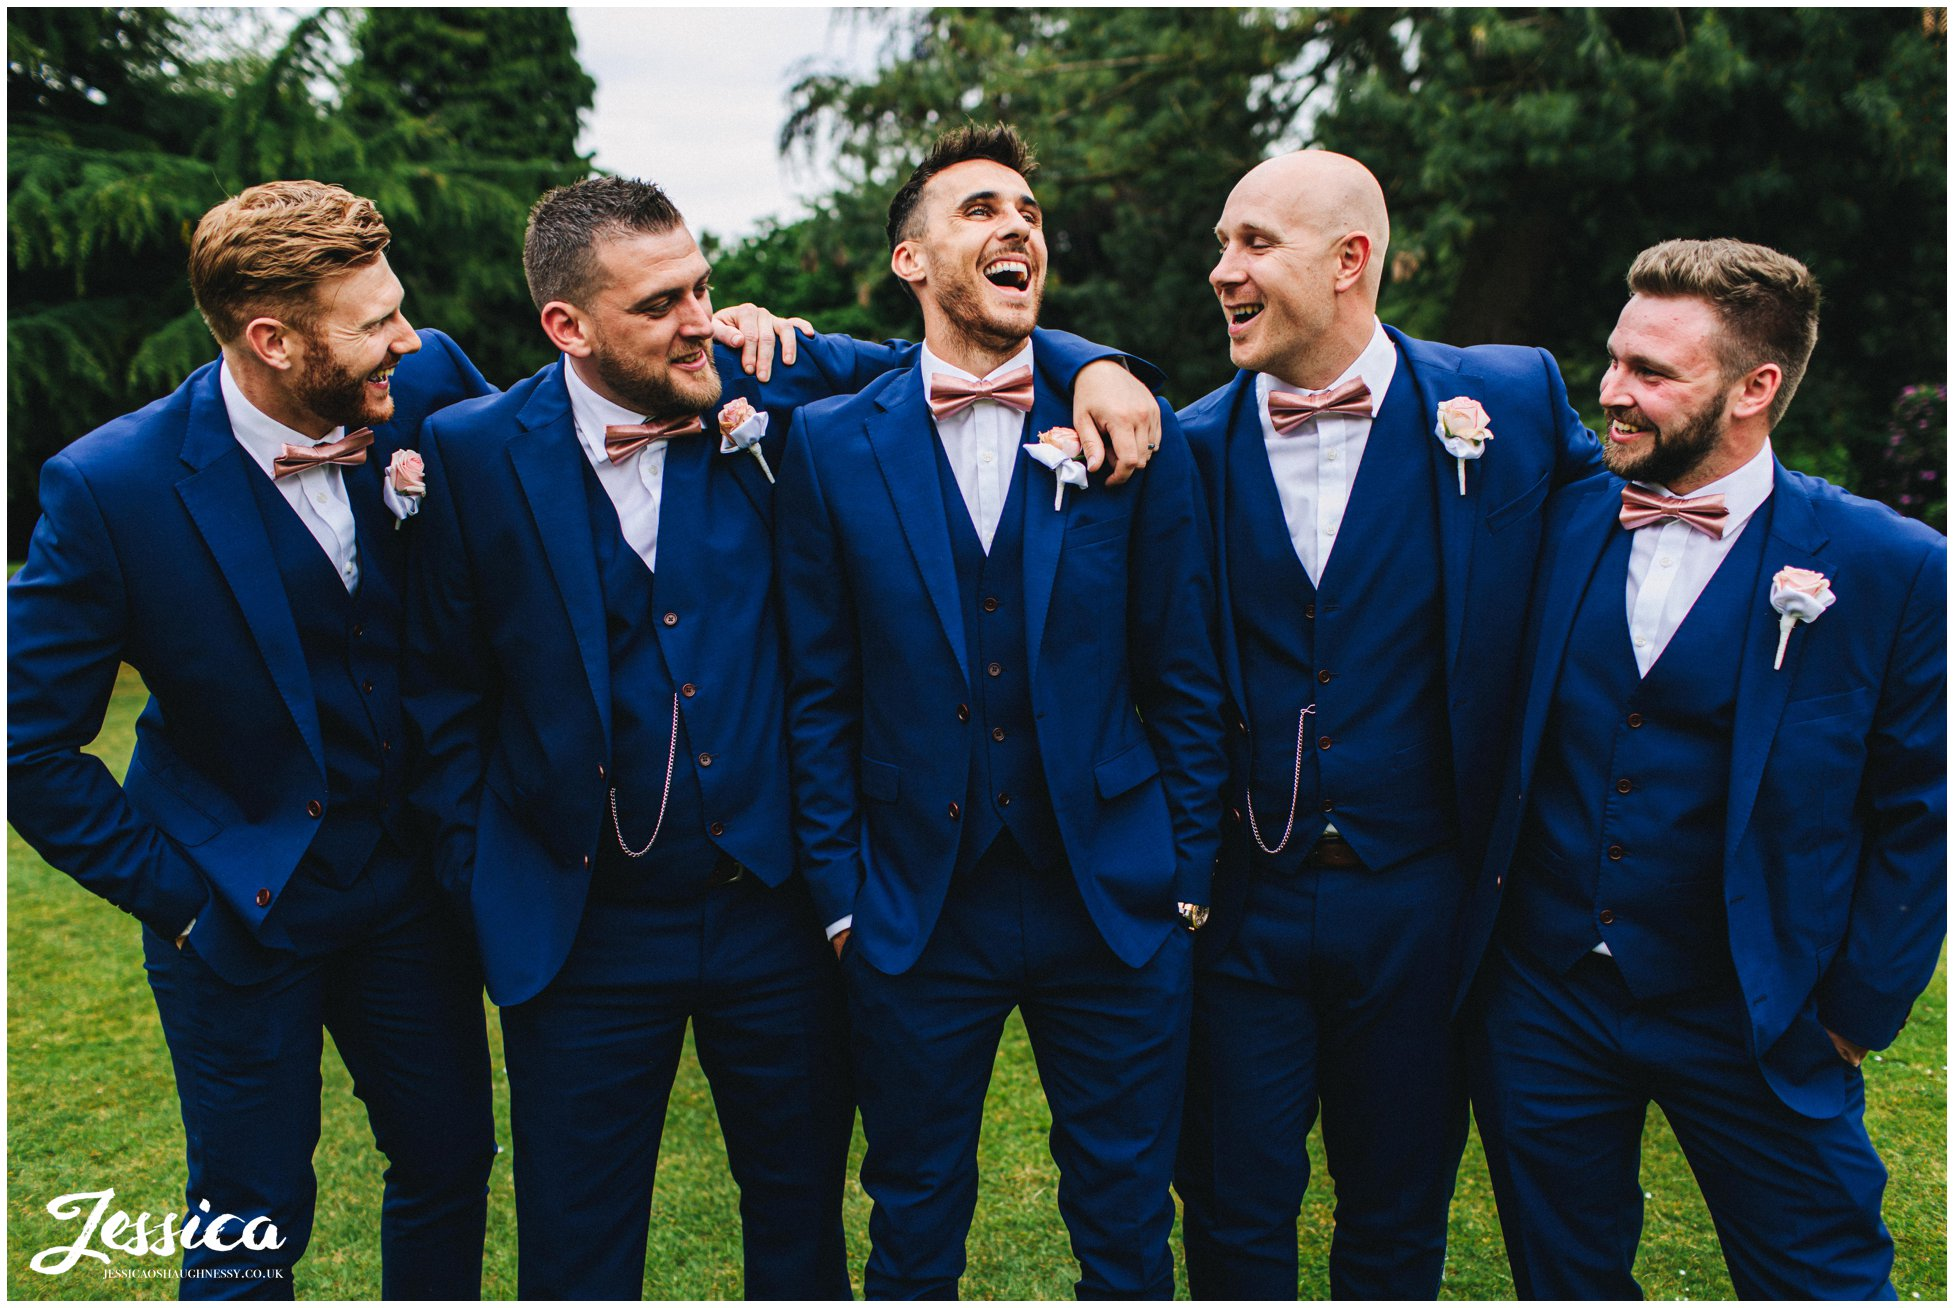 groom & groomsmen pose for group photograph